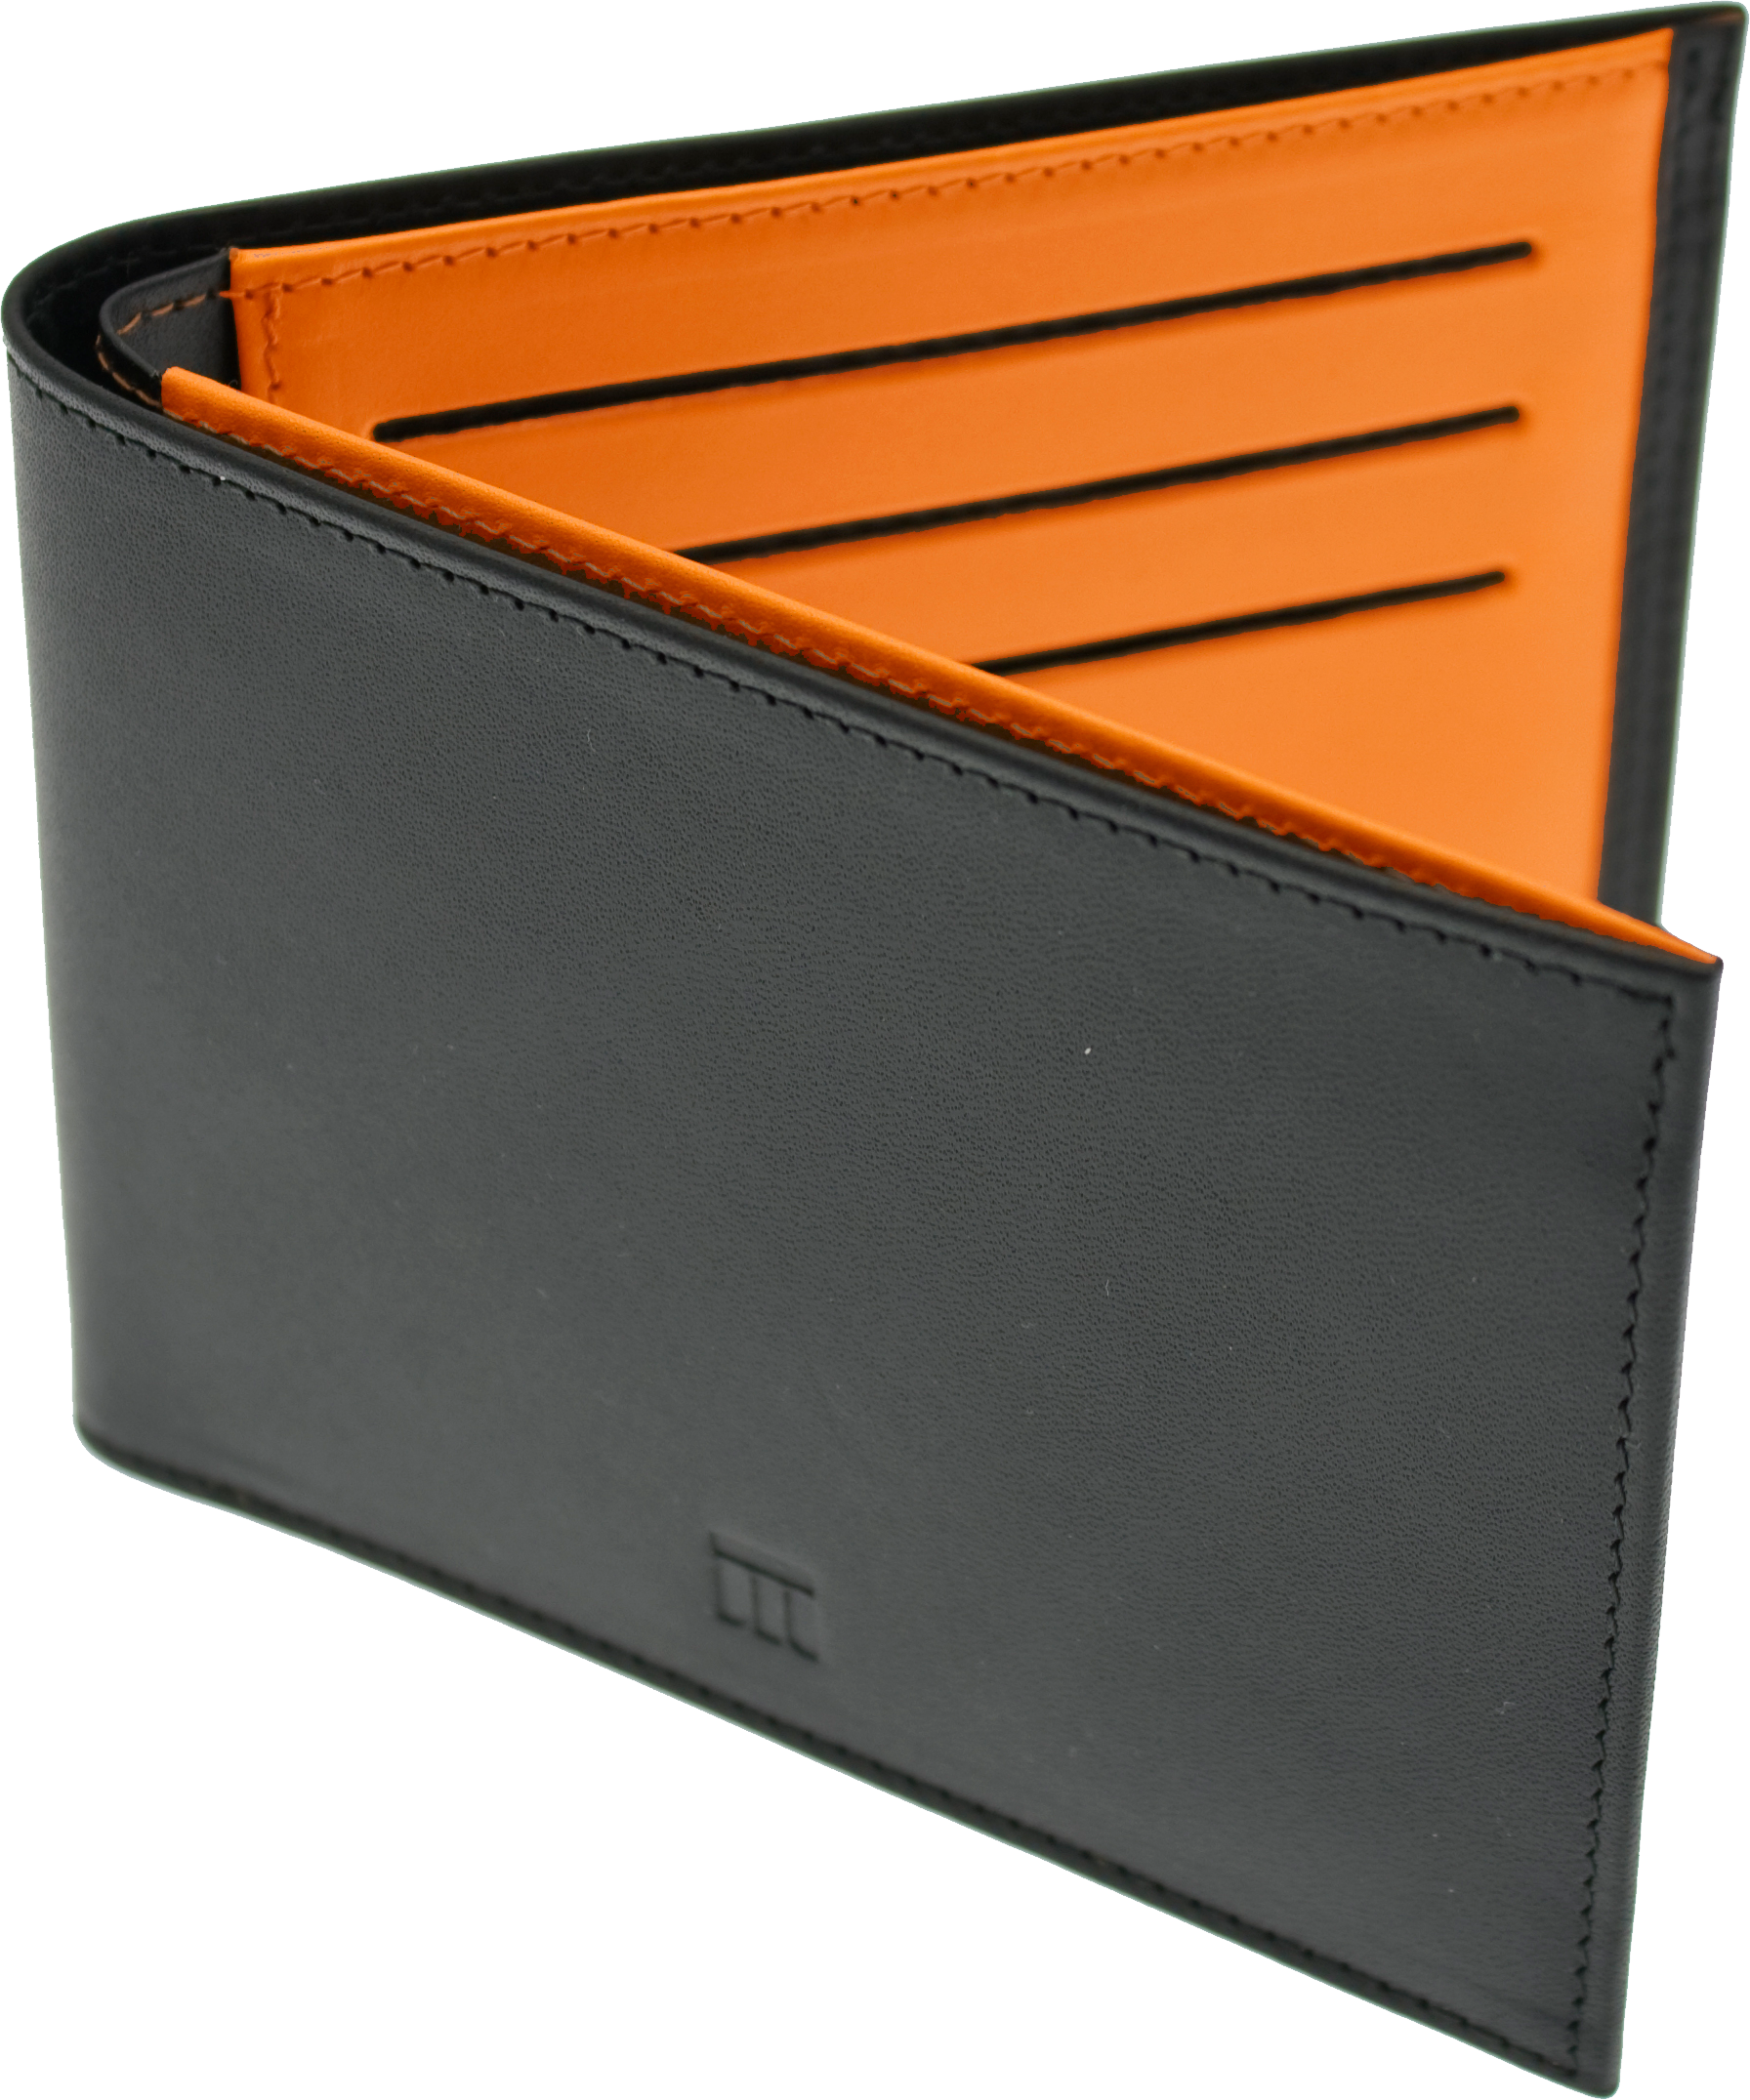 Wallet clipart leather wallet. Wallets png images free